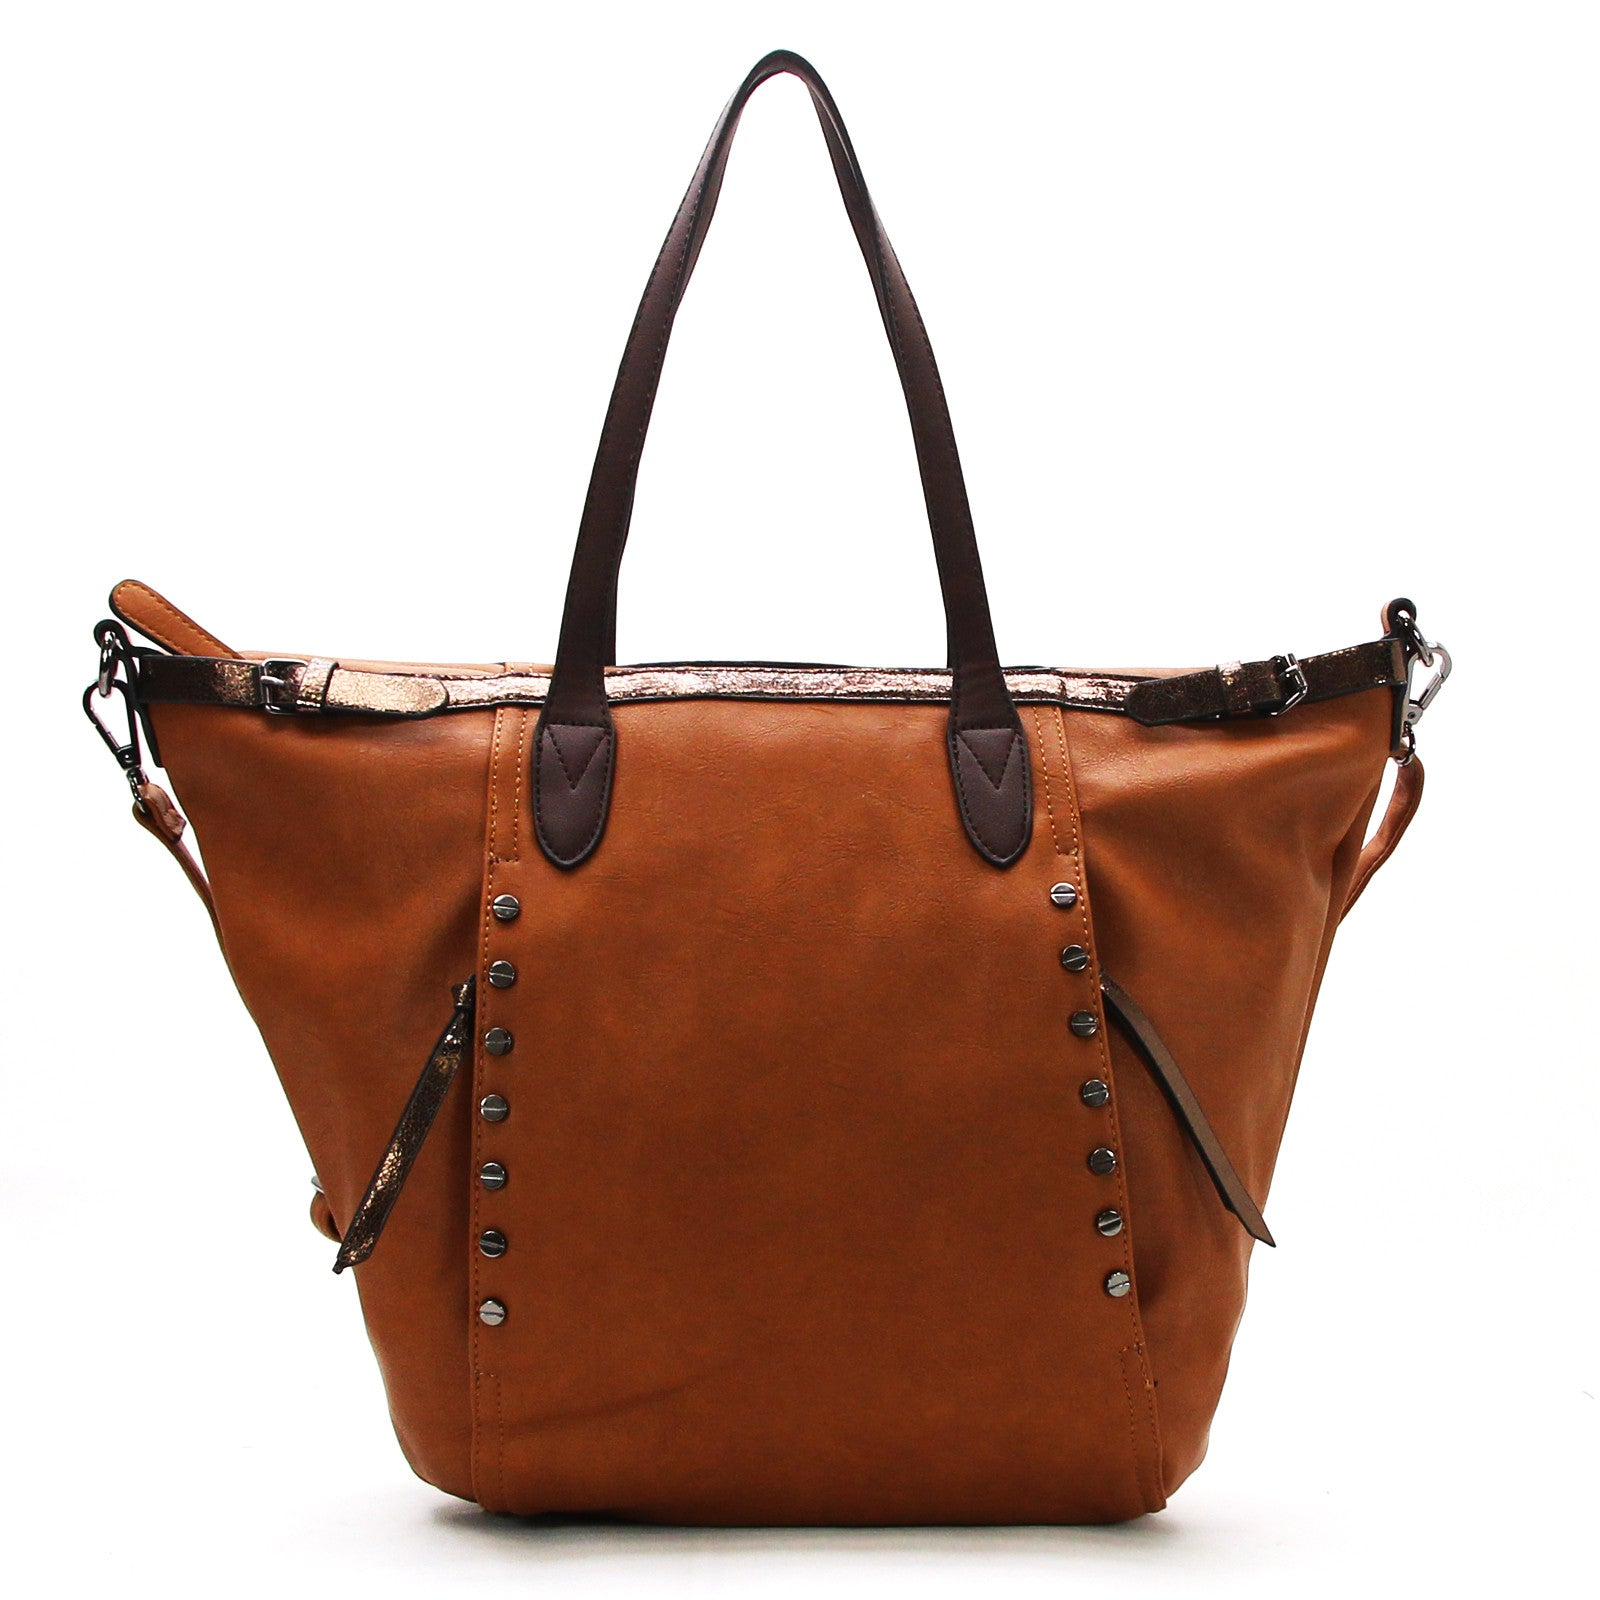 Studded Evening Tote with Adjustable Strap - Brown - Pop Fashion